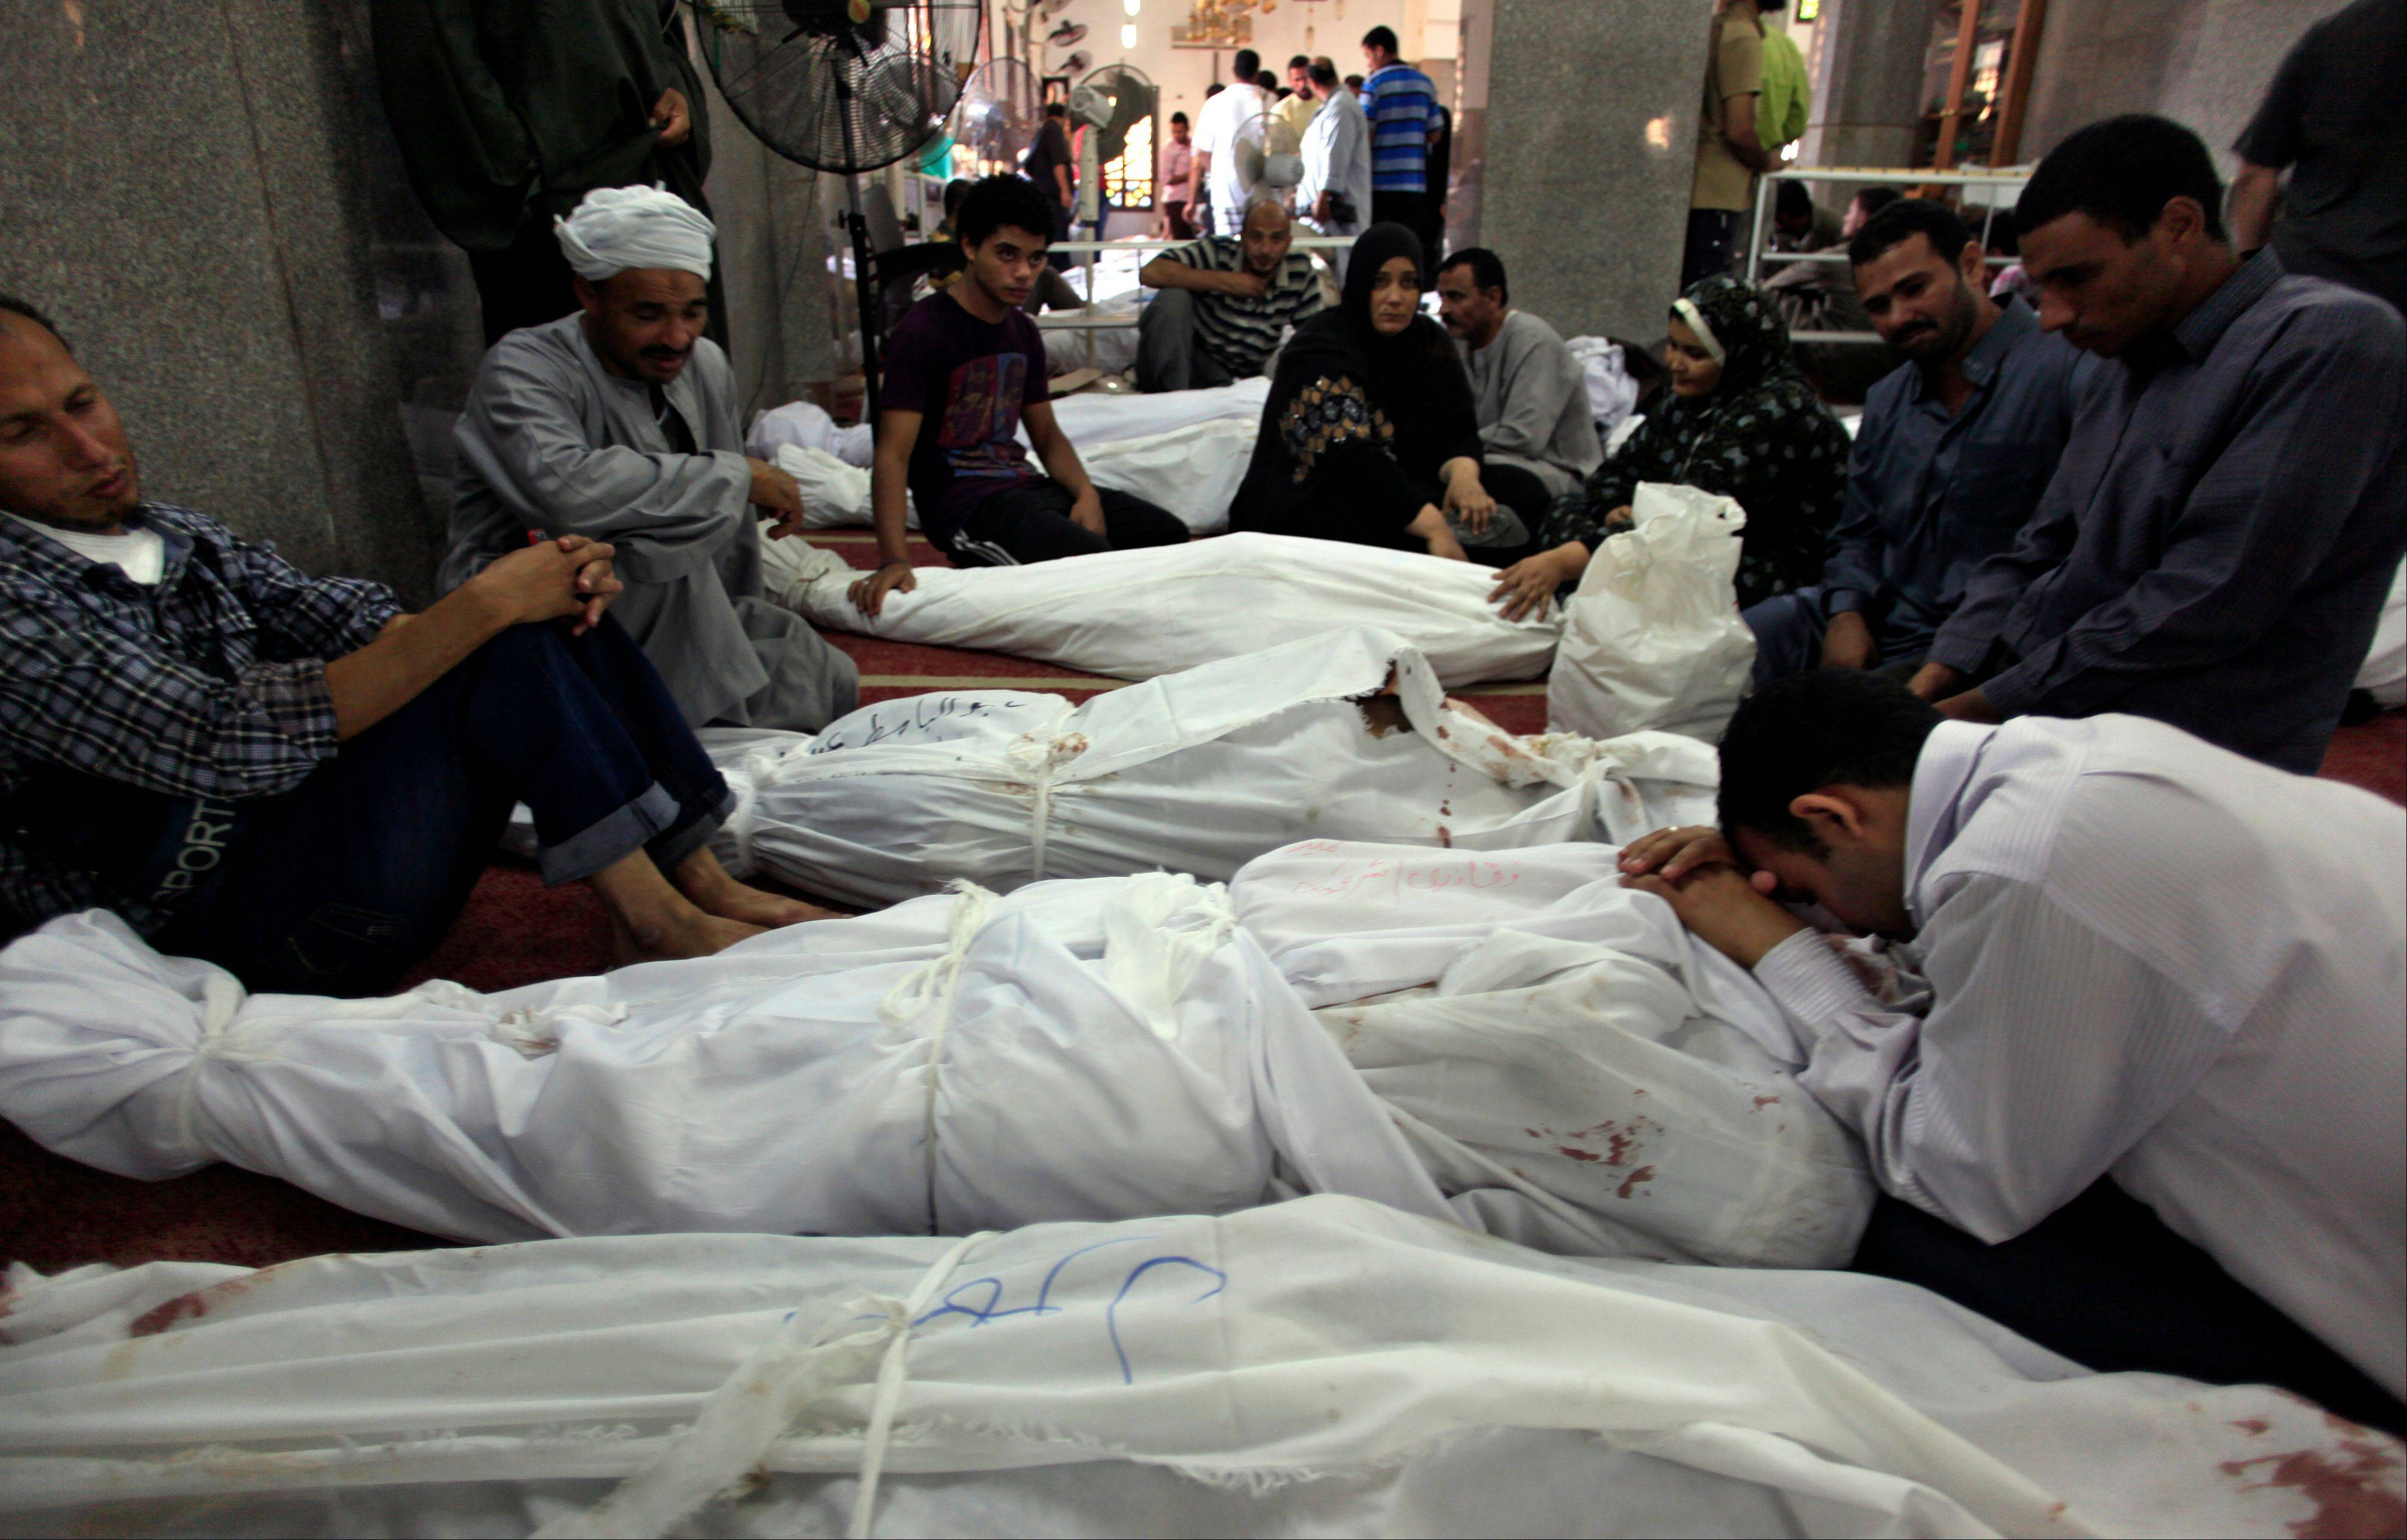 Death toll from Egypt violence rises to 525